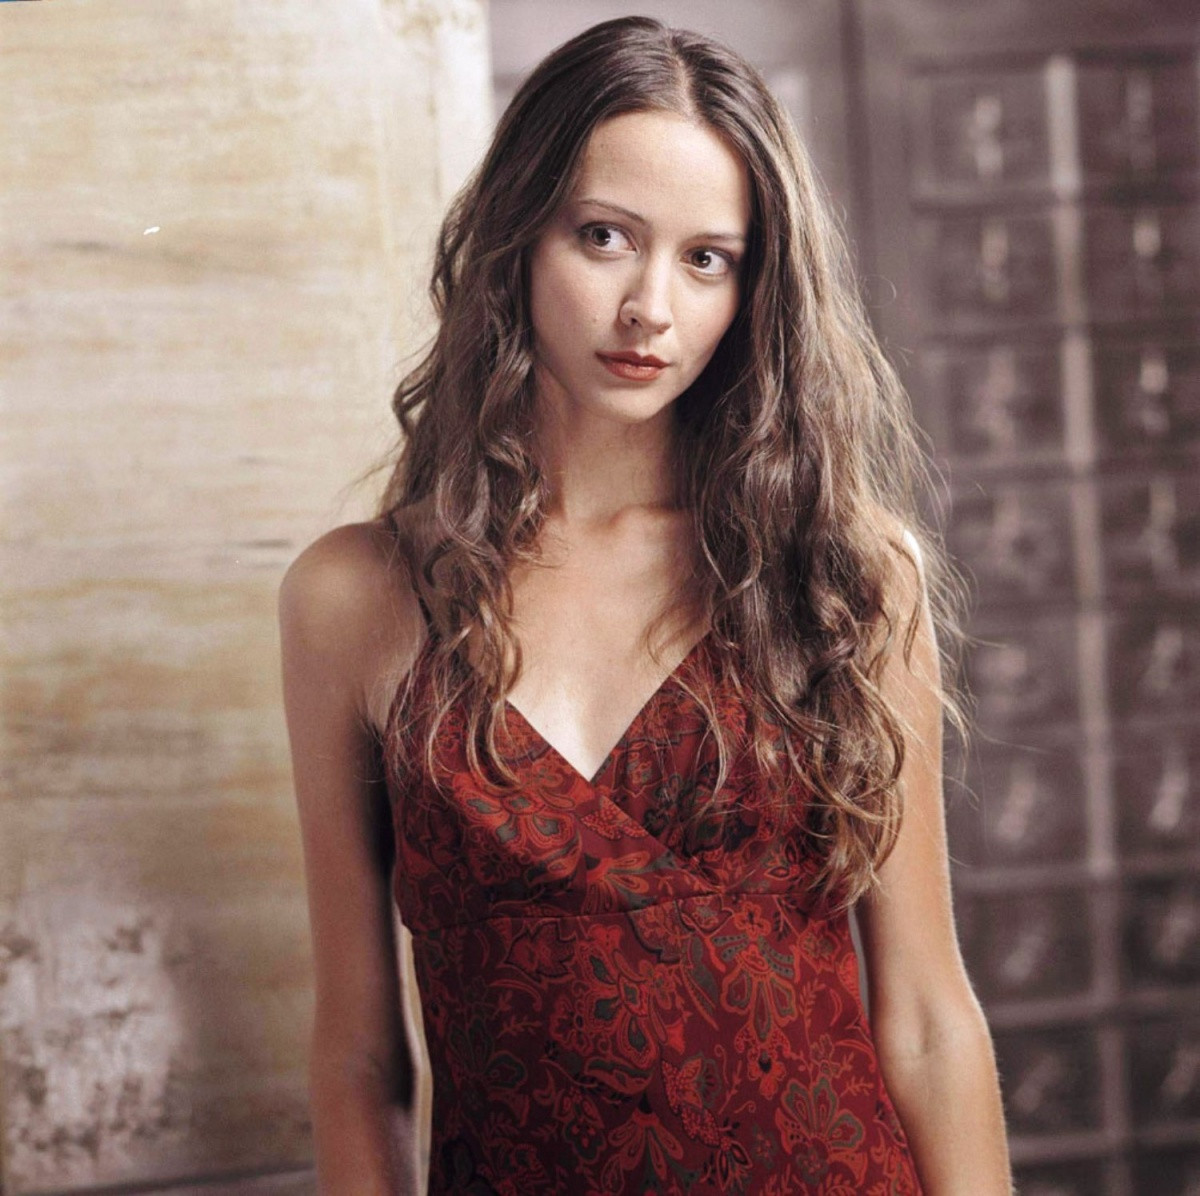 amy acker photo 7 of 11 pics, wallpaper - photo #204074 - theplace2